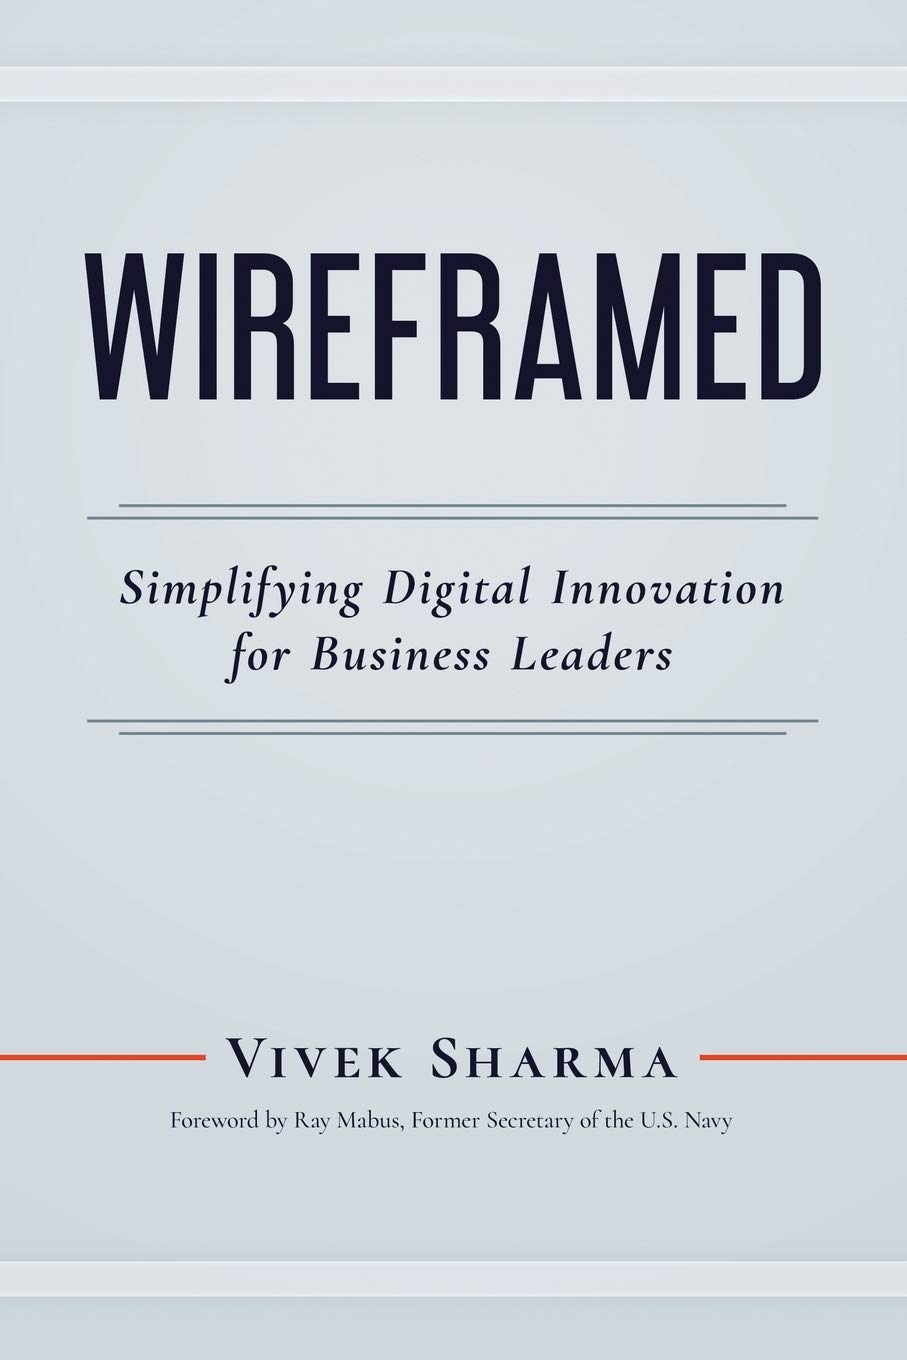 WIREFRAMED: Simplifying Digital Innovation for Business Leaders